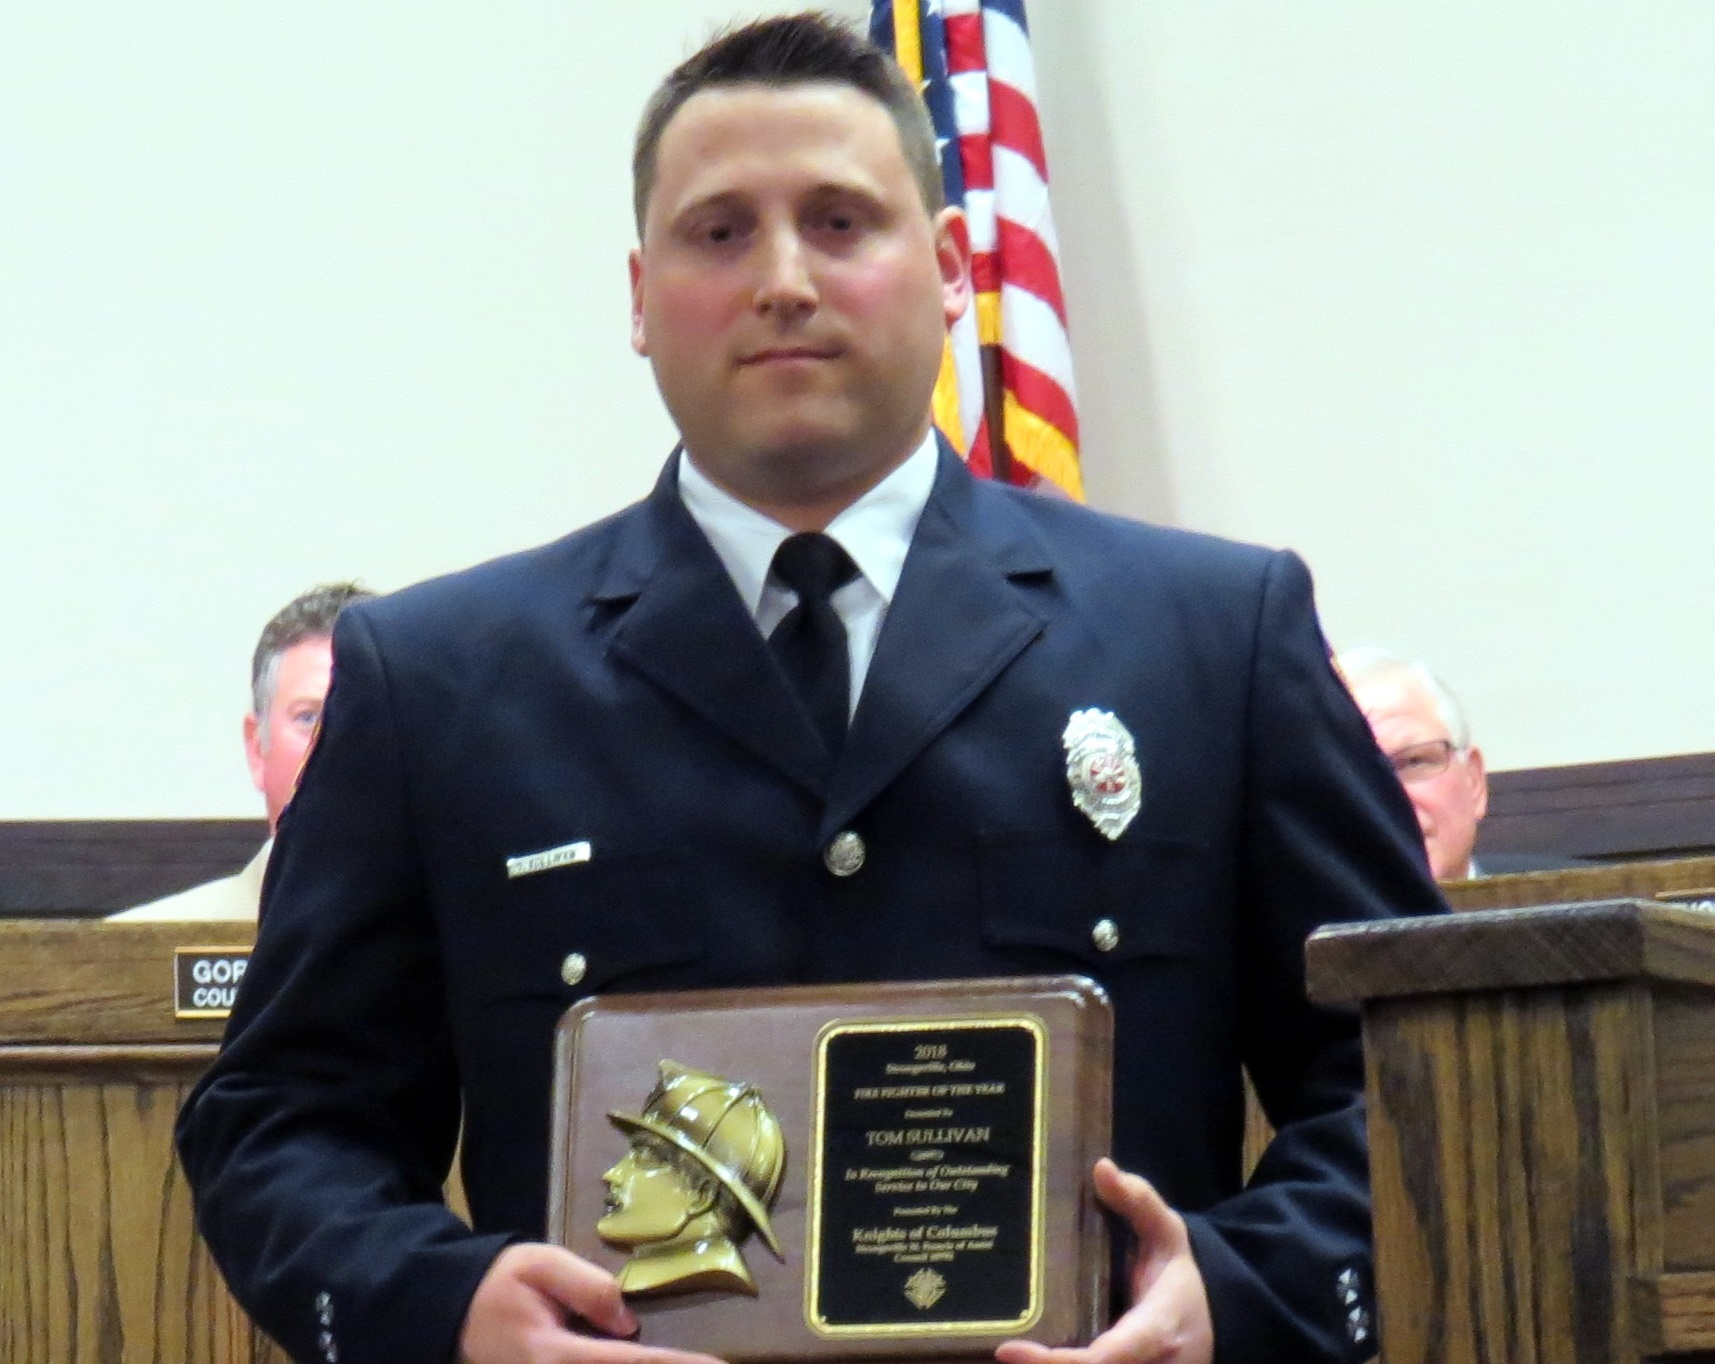 Sullivan is Firefighter of the Year